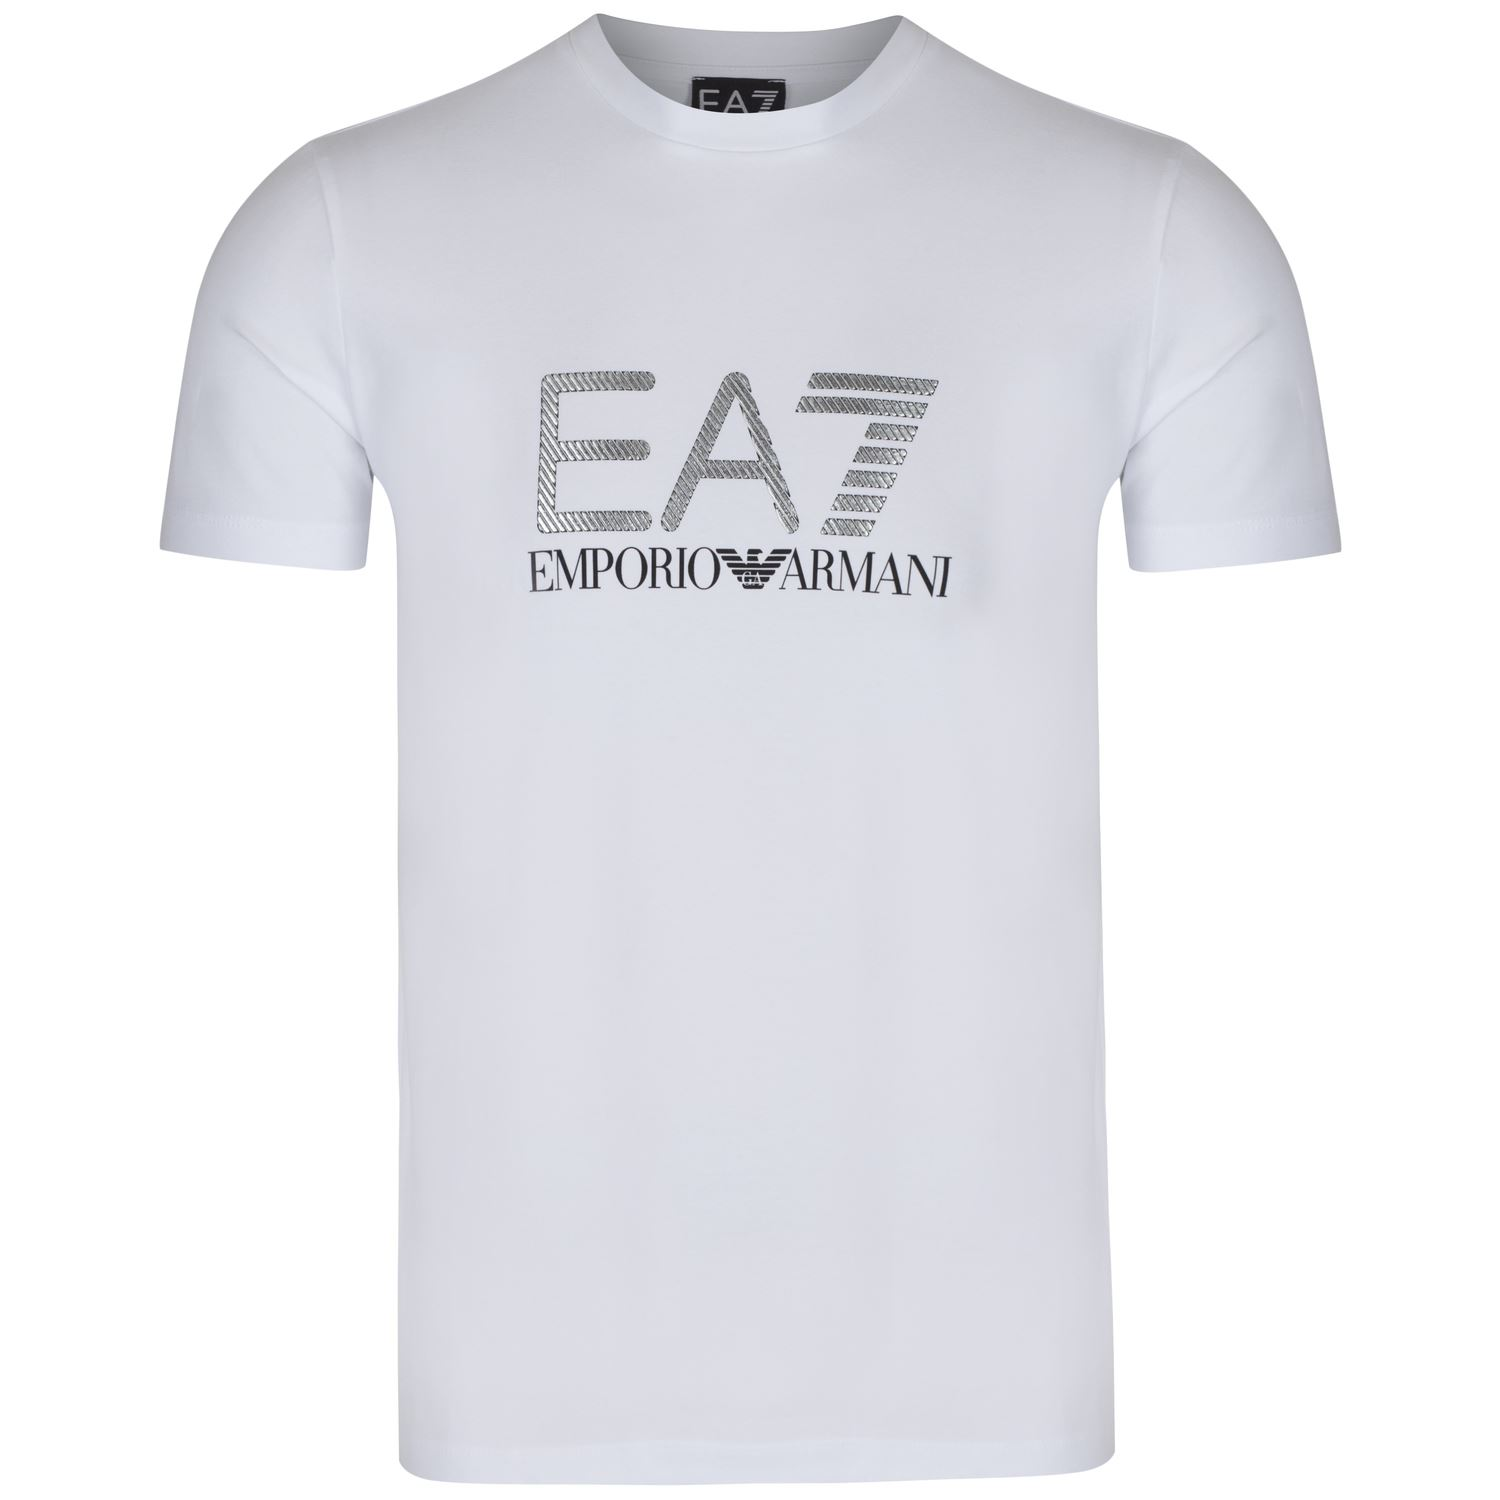 T shirt white ebay - Emporio Armani Ea7 Men 039 S Graphic Printed